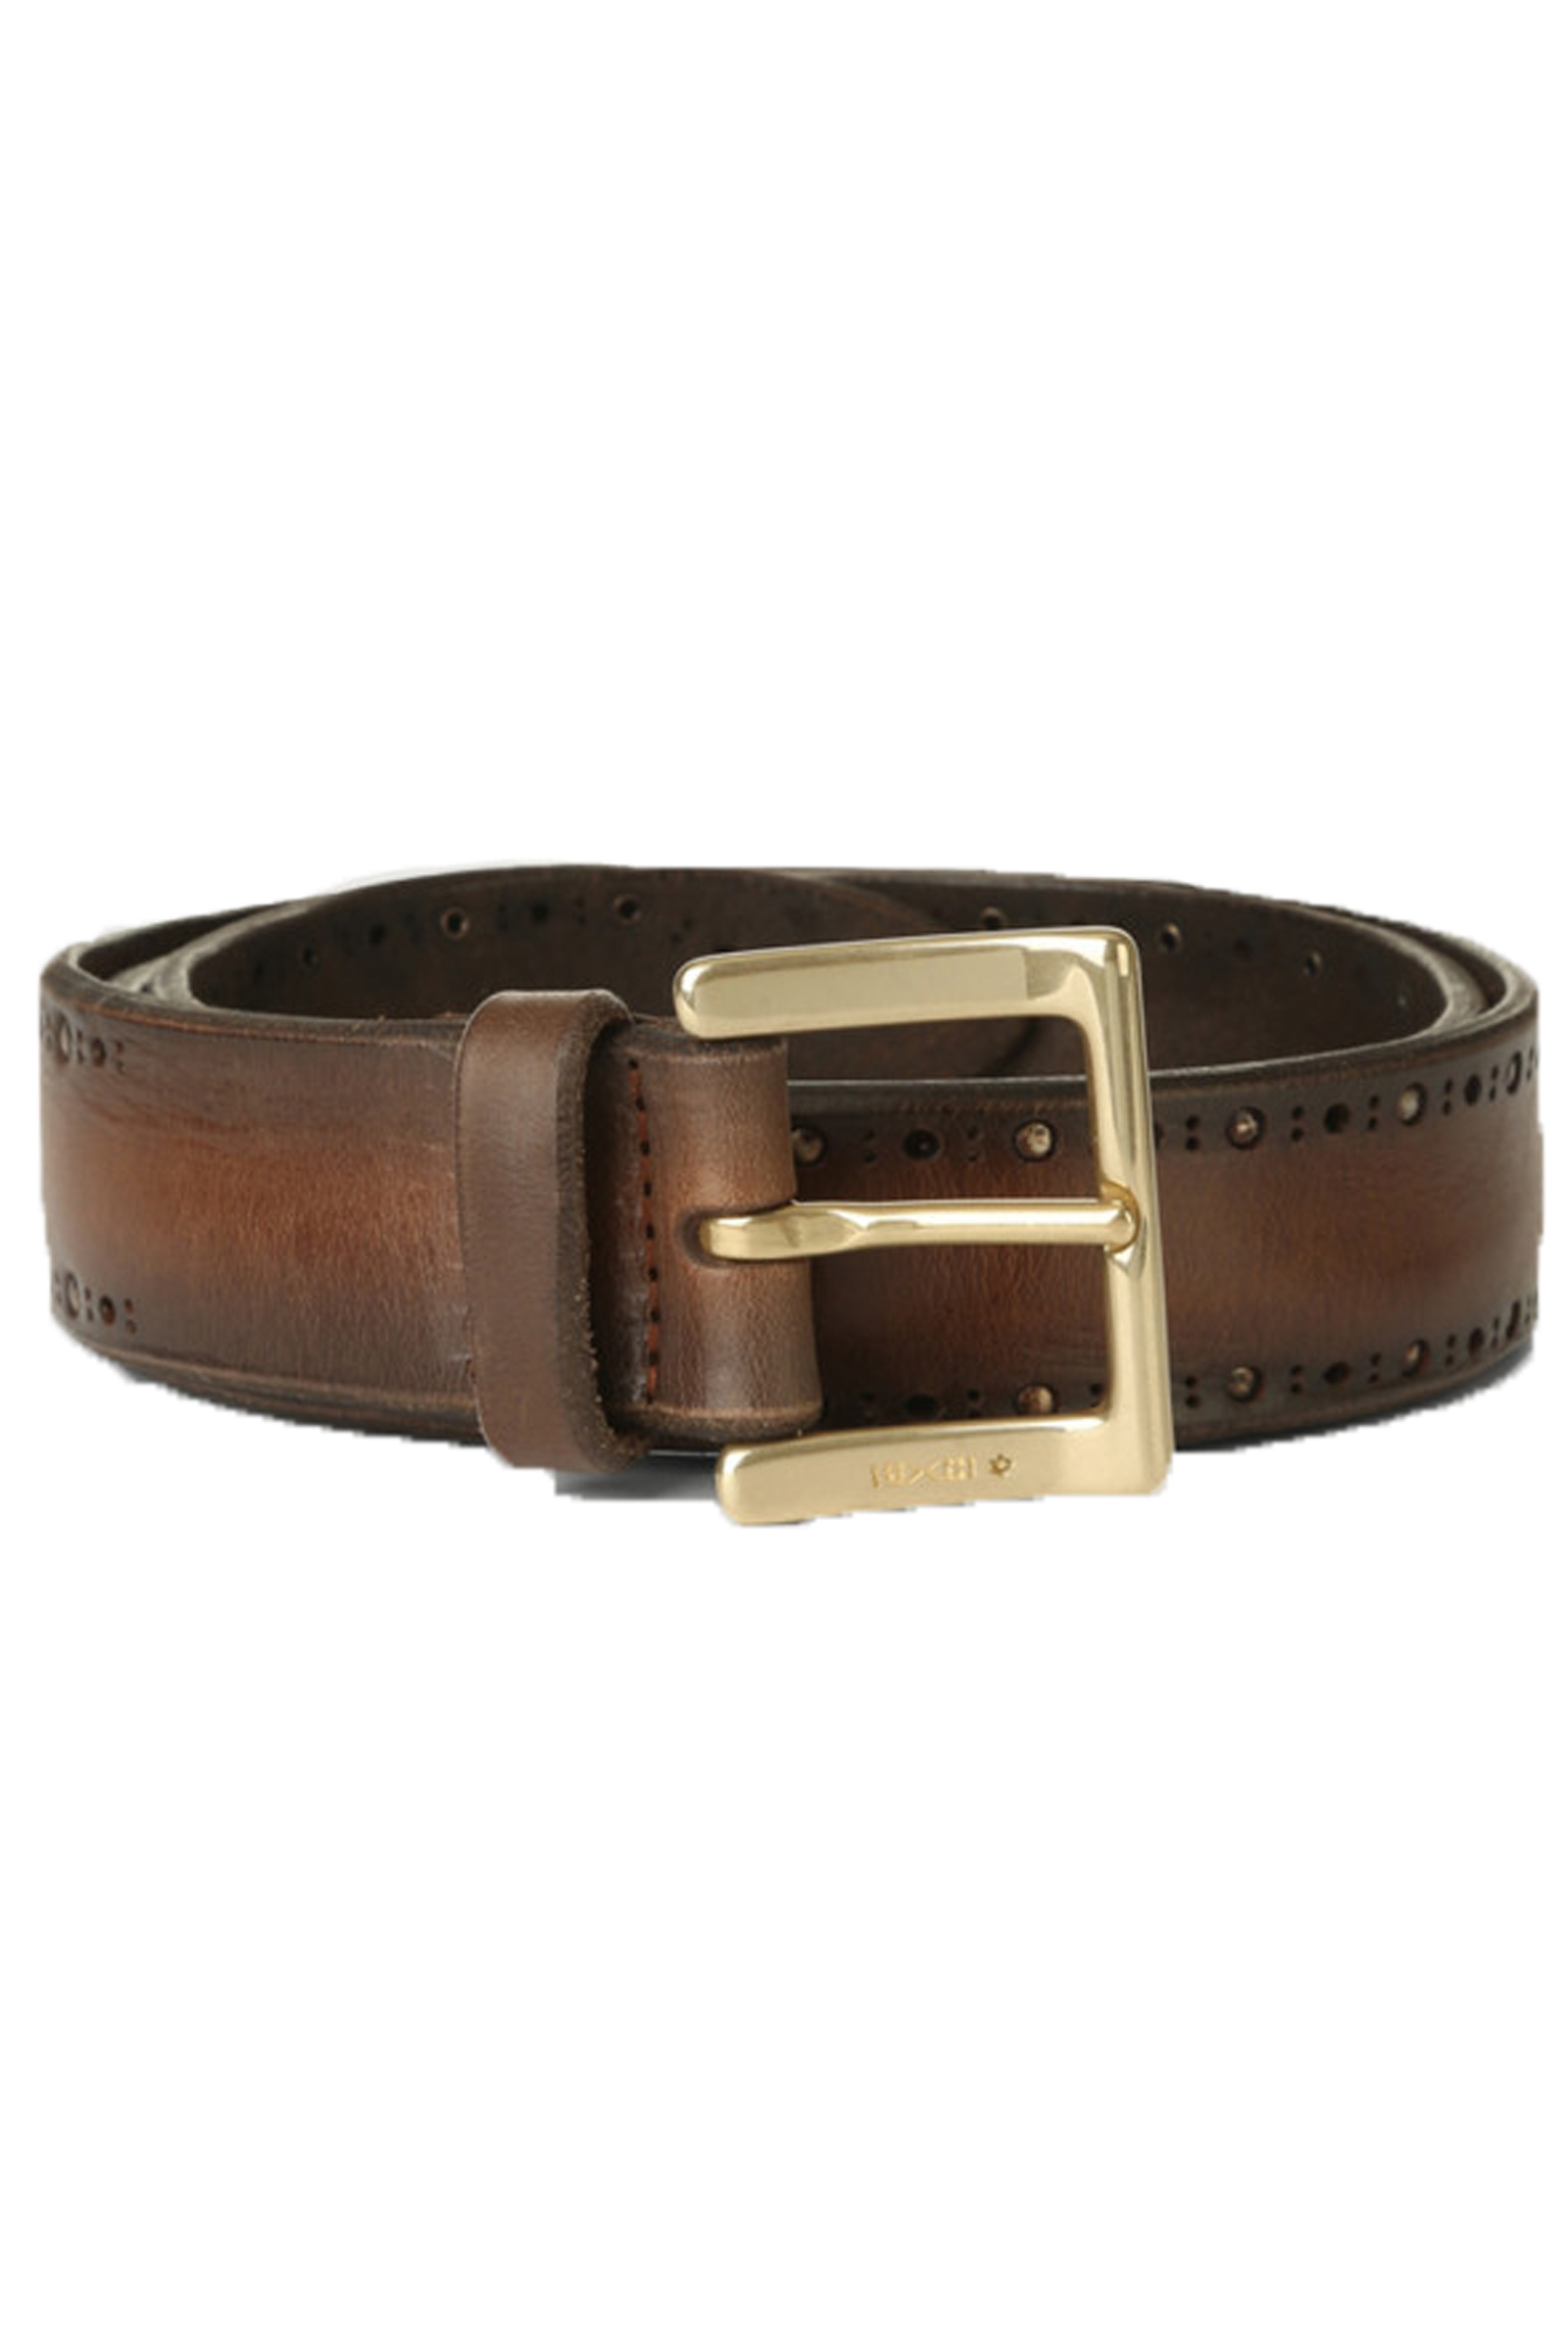 Orciani belt in dark brown leather for men ORCIANI | U078551